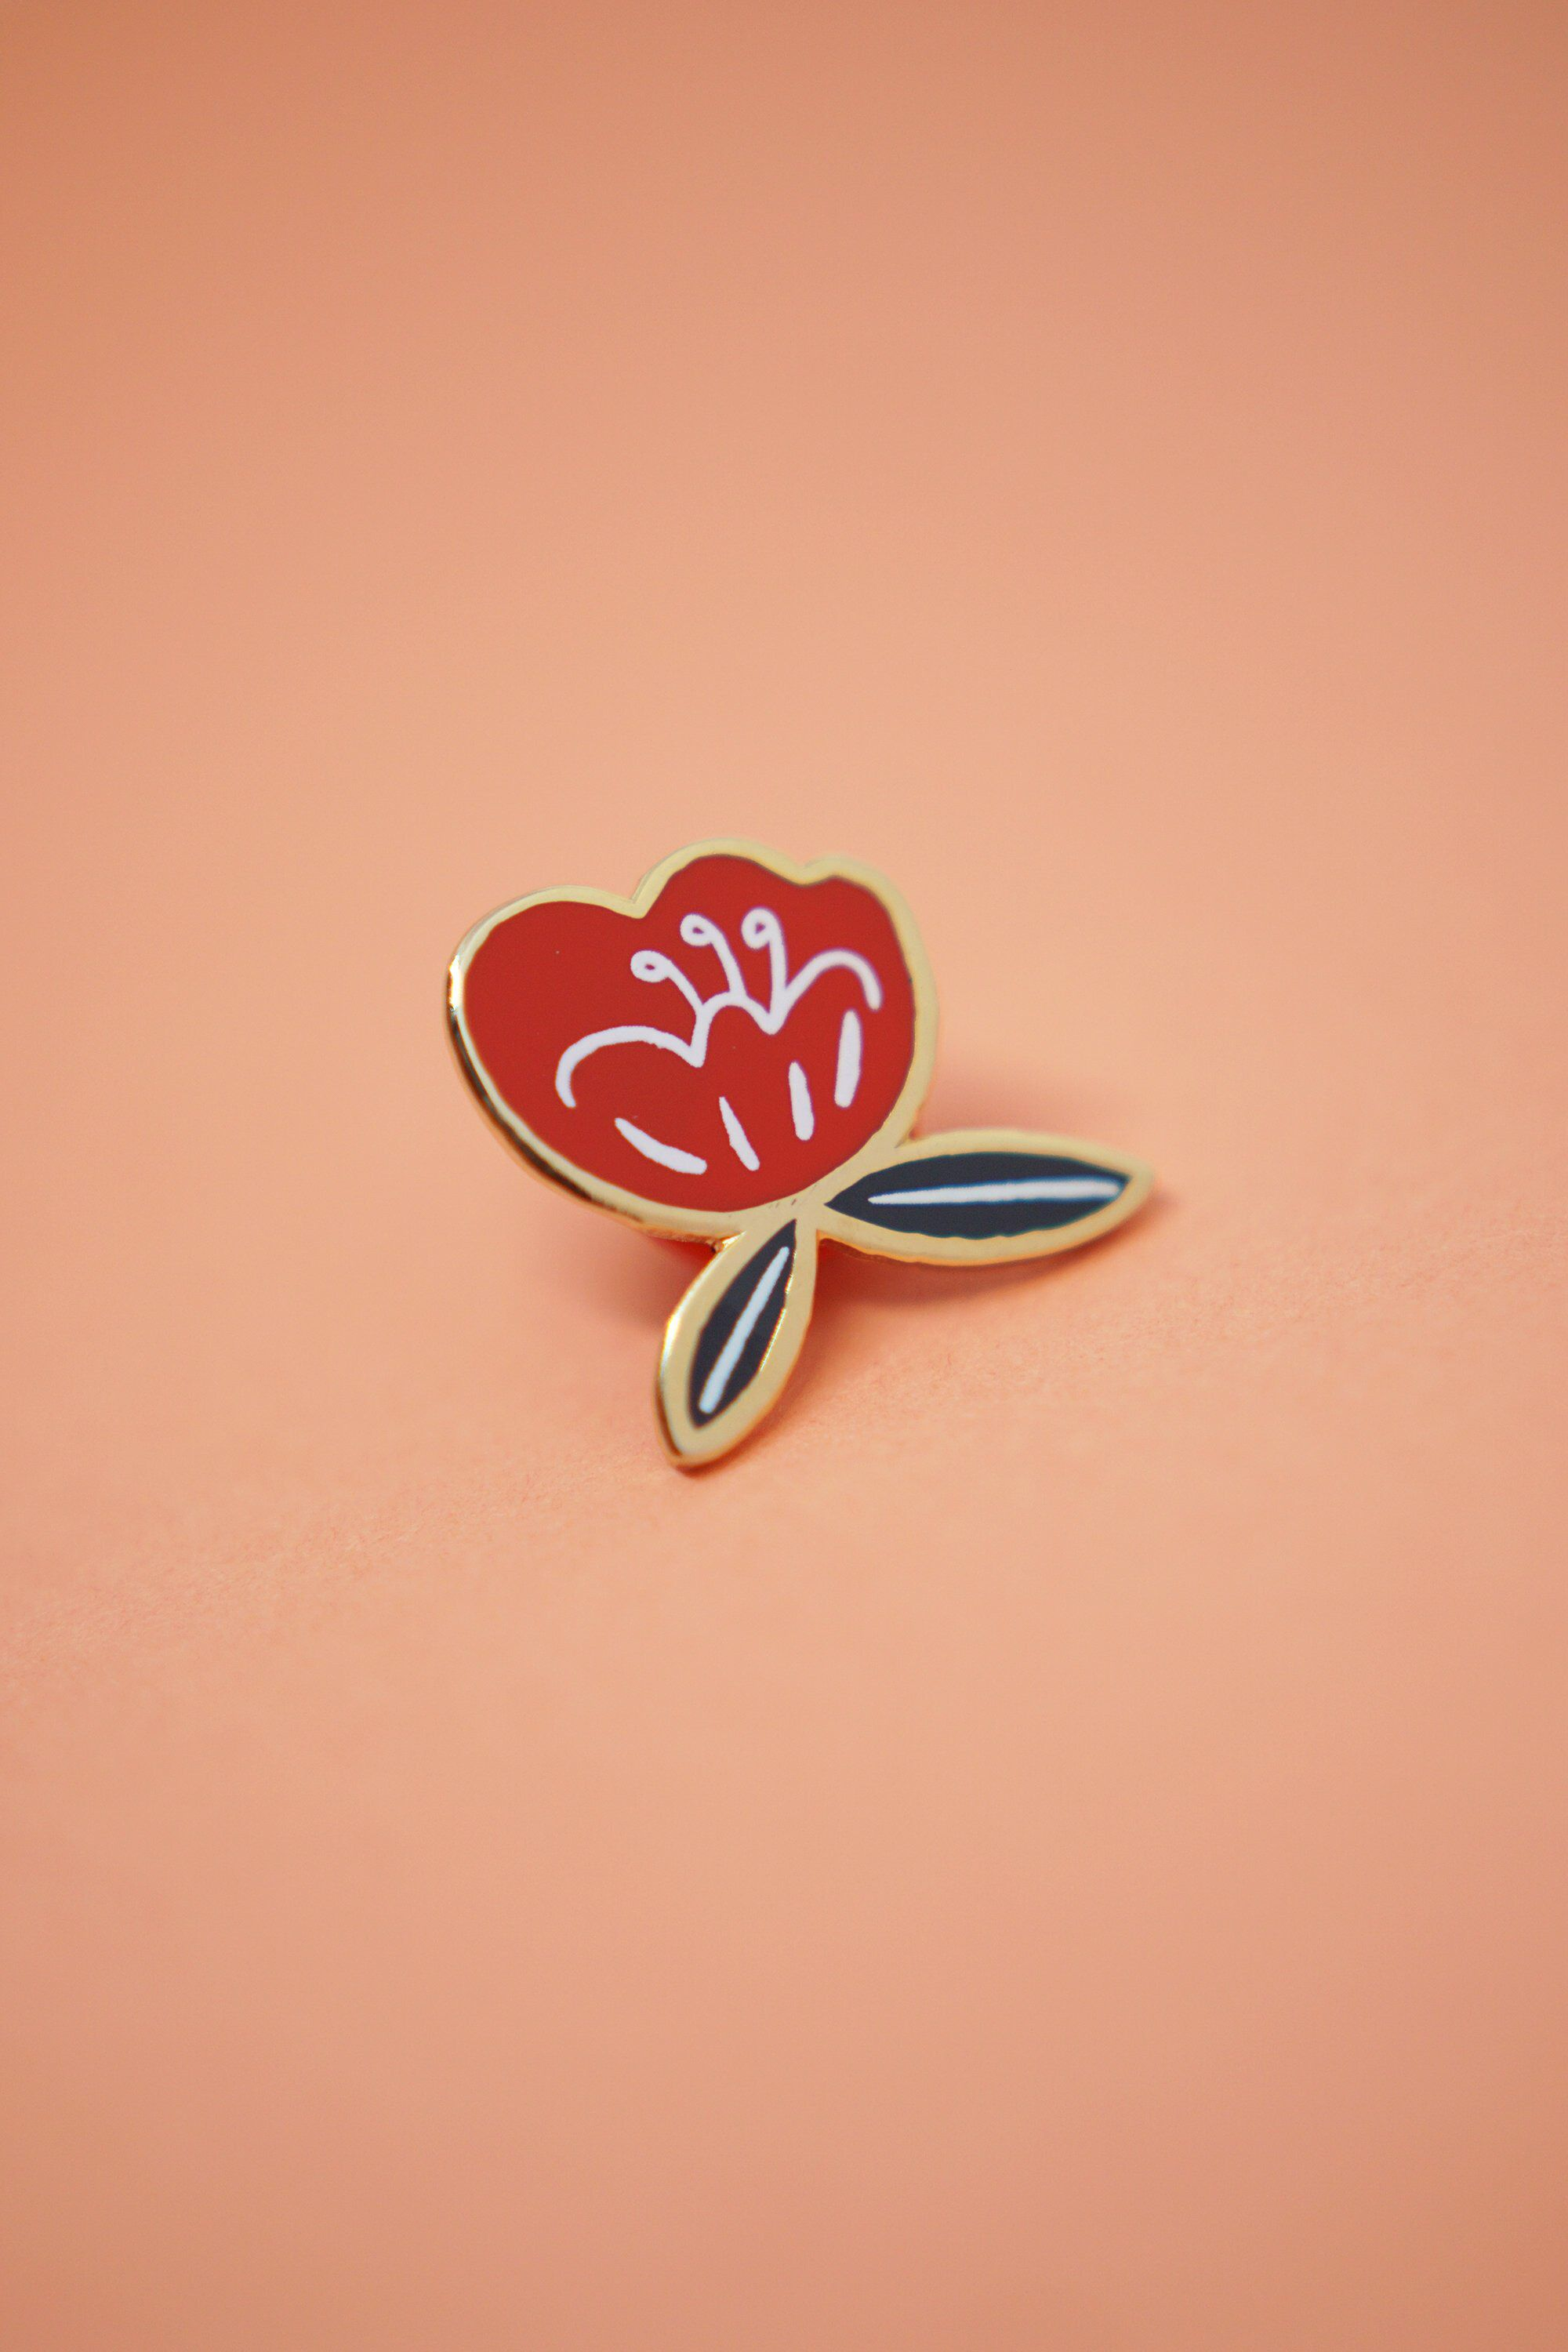 Poppy Flower Enamel Pin By Justinegilbuena On Etsy Patches N Pins